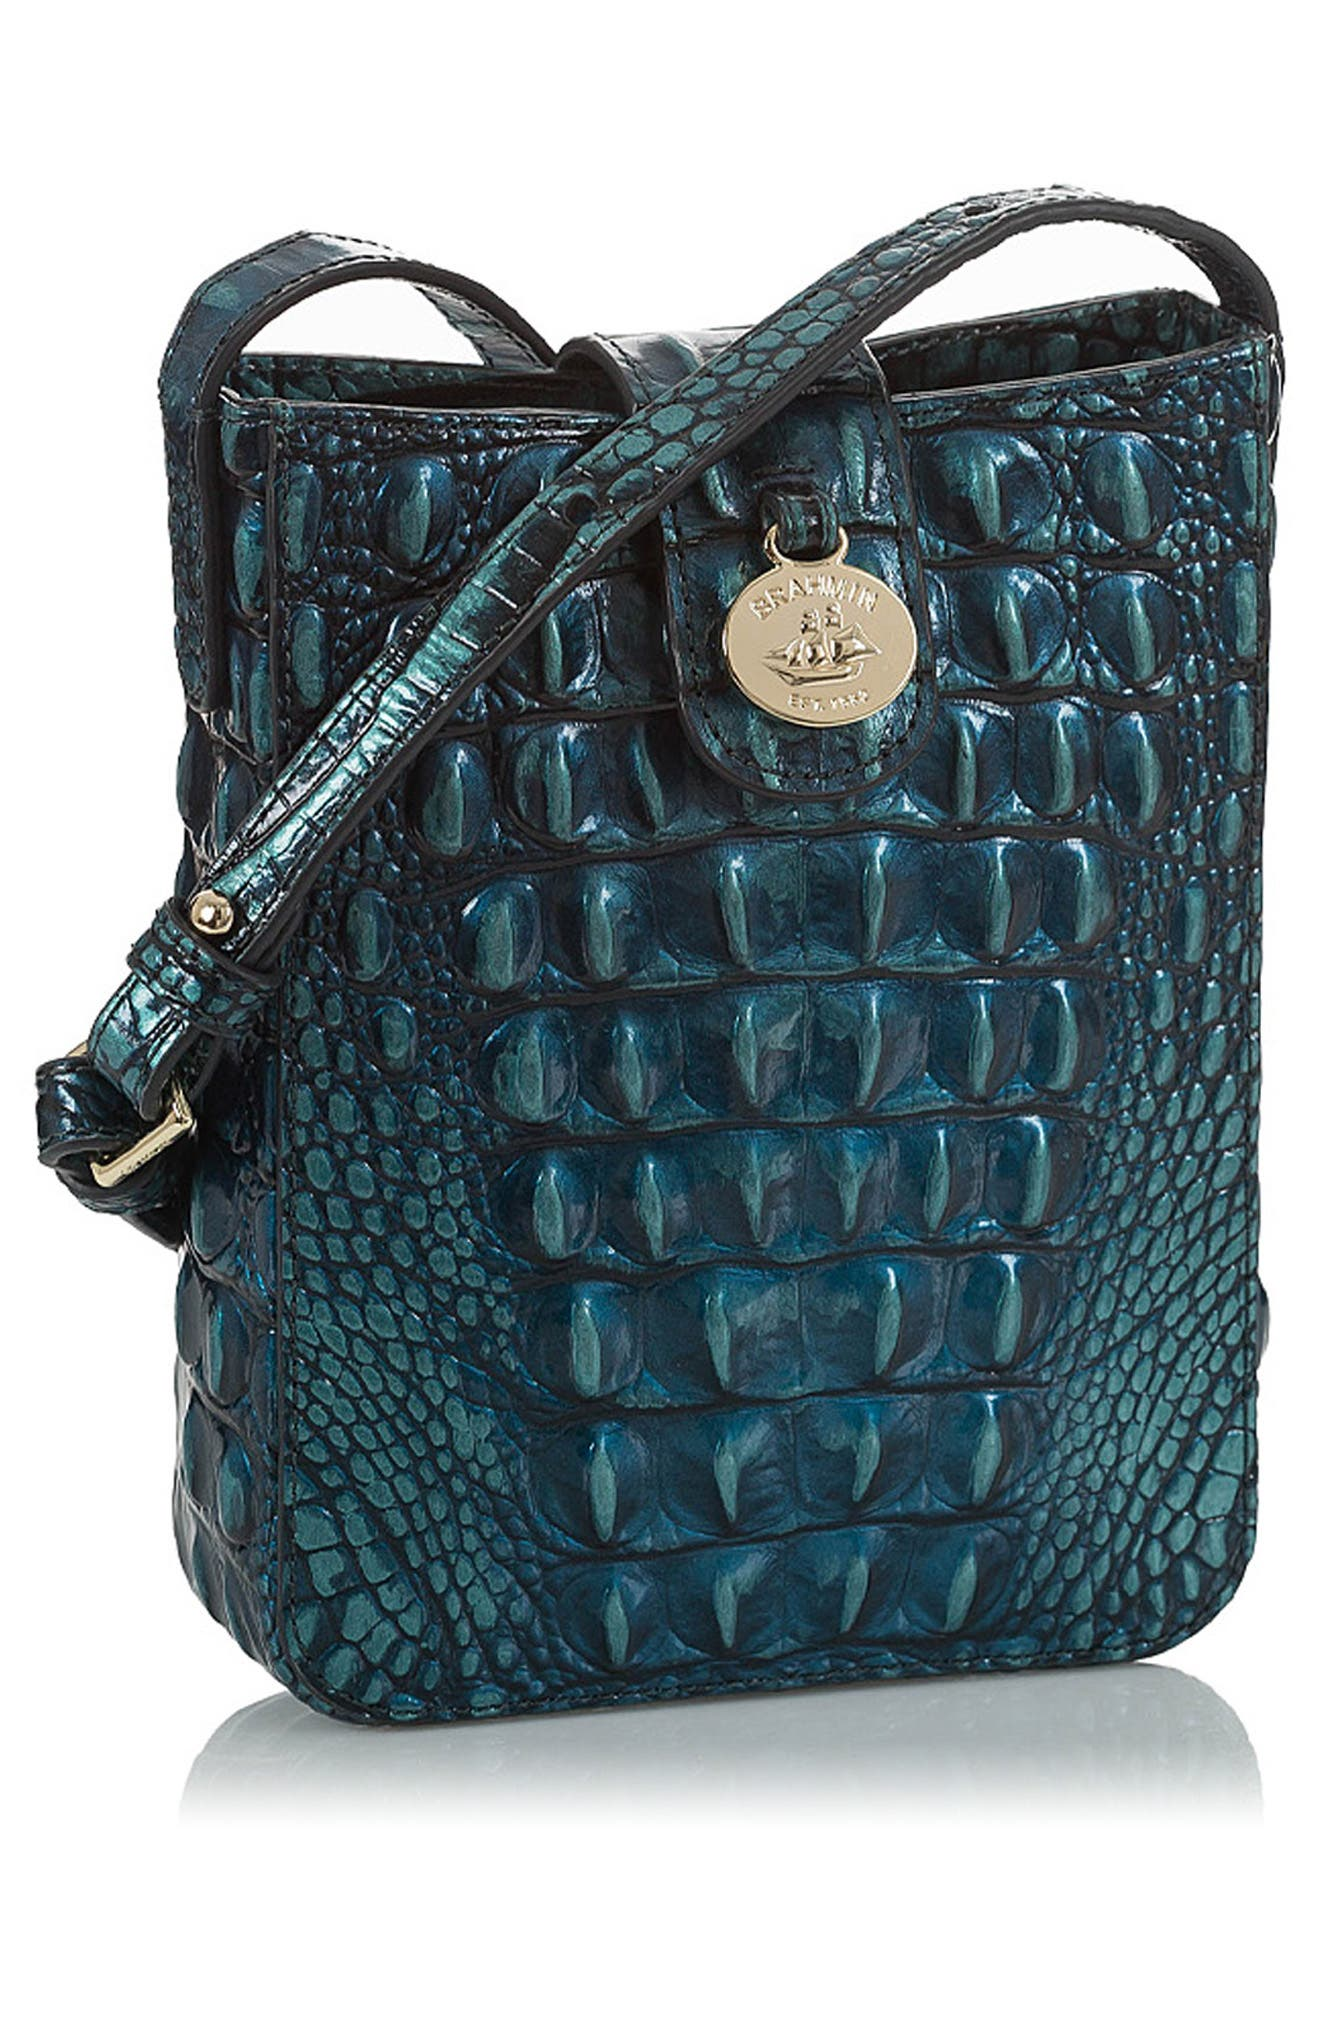 Marley Croc Embossed Leather Crossbody Bag,                             Alternate thumbnail 4, color,                             VERDIGRIS